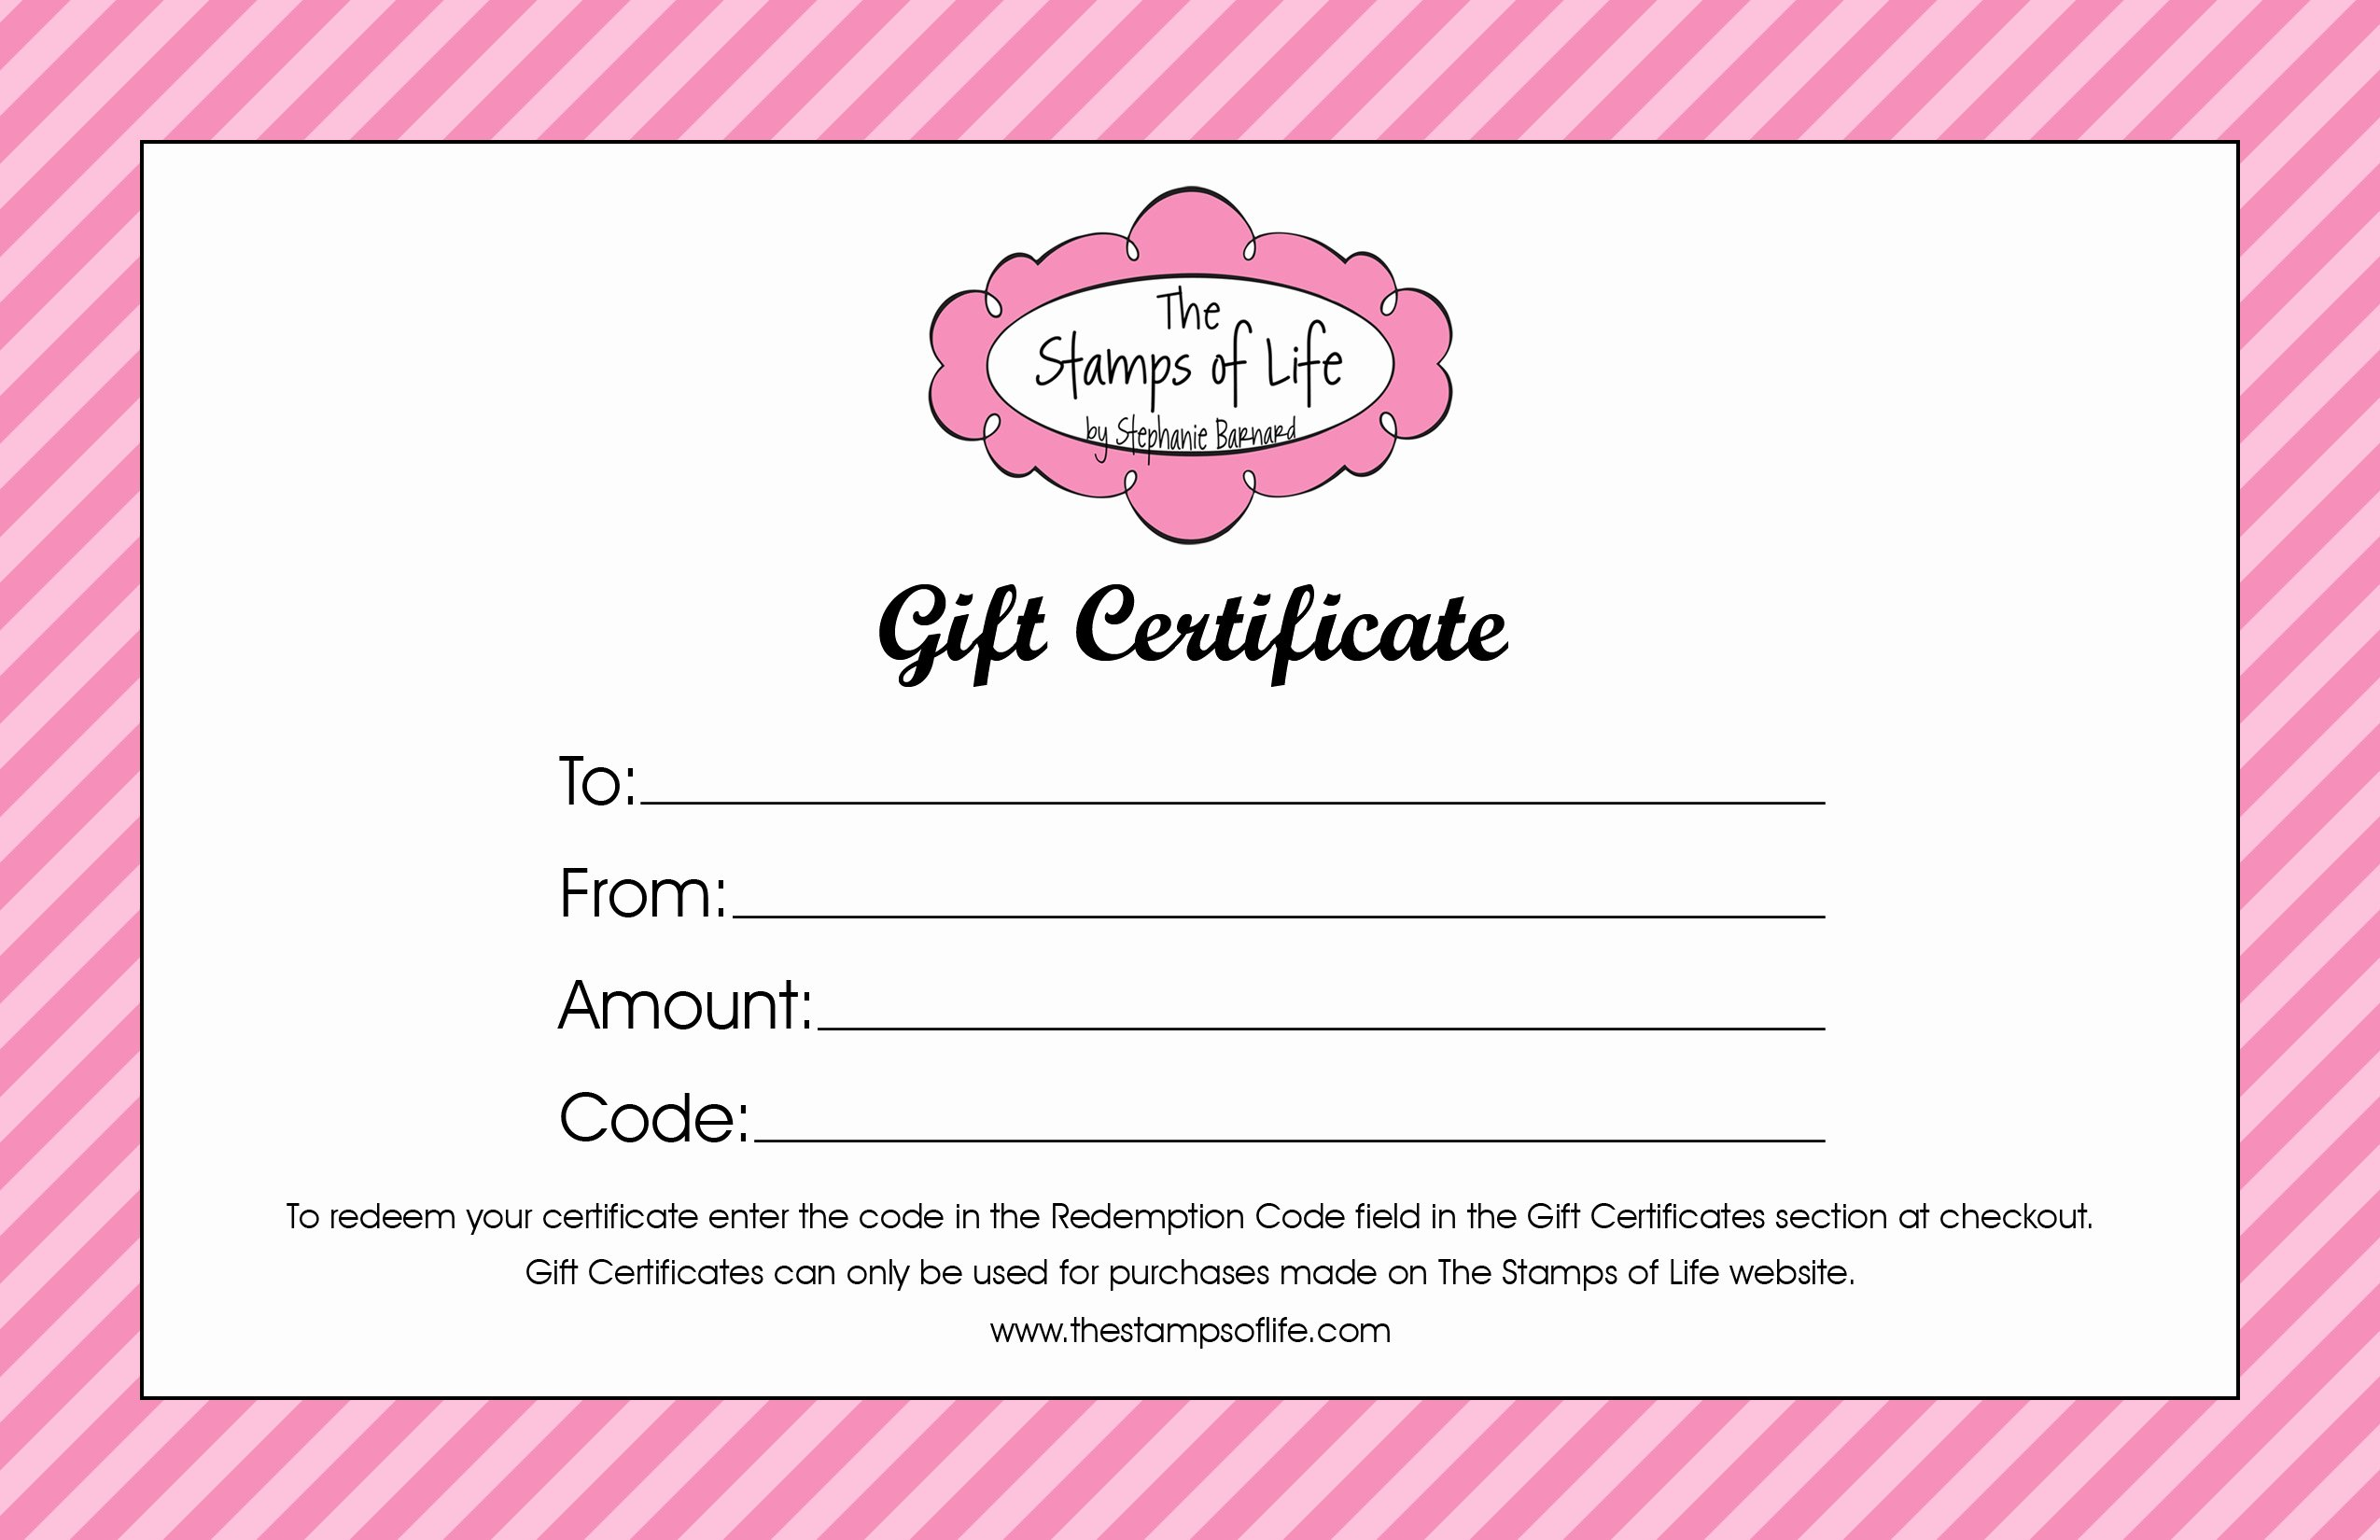 Gift Certificate Template Word Free Awesome 21 Free Free Gift Certificate Templates Word Excel formats